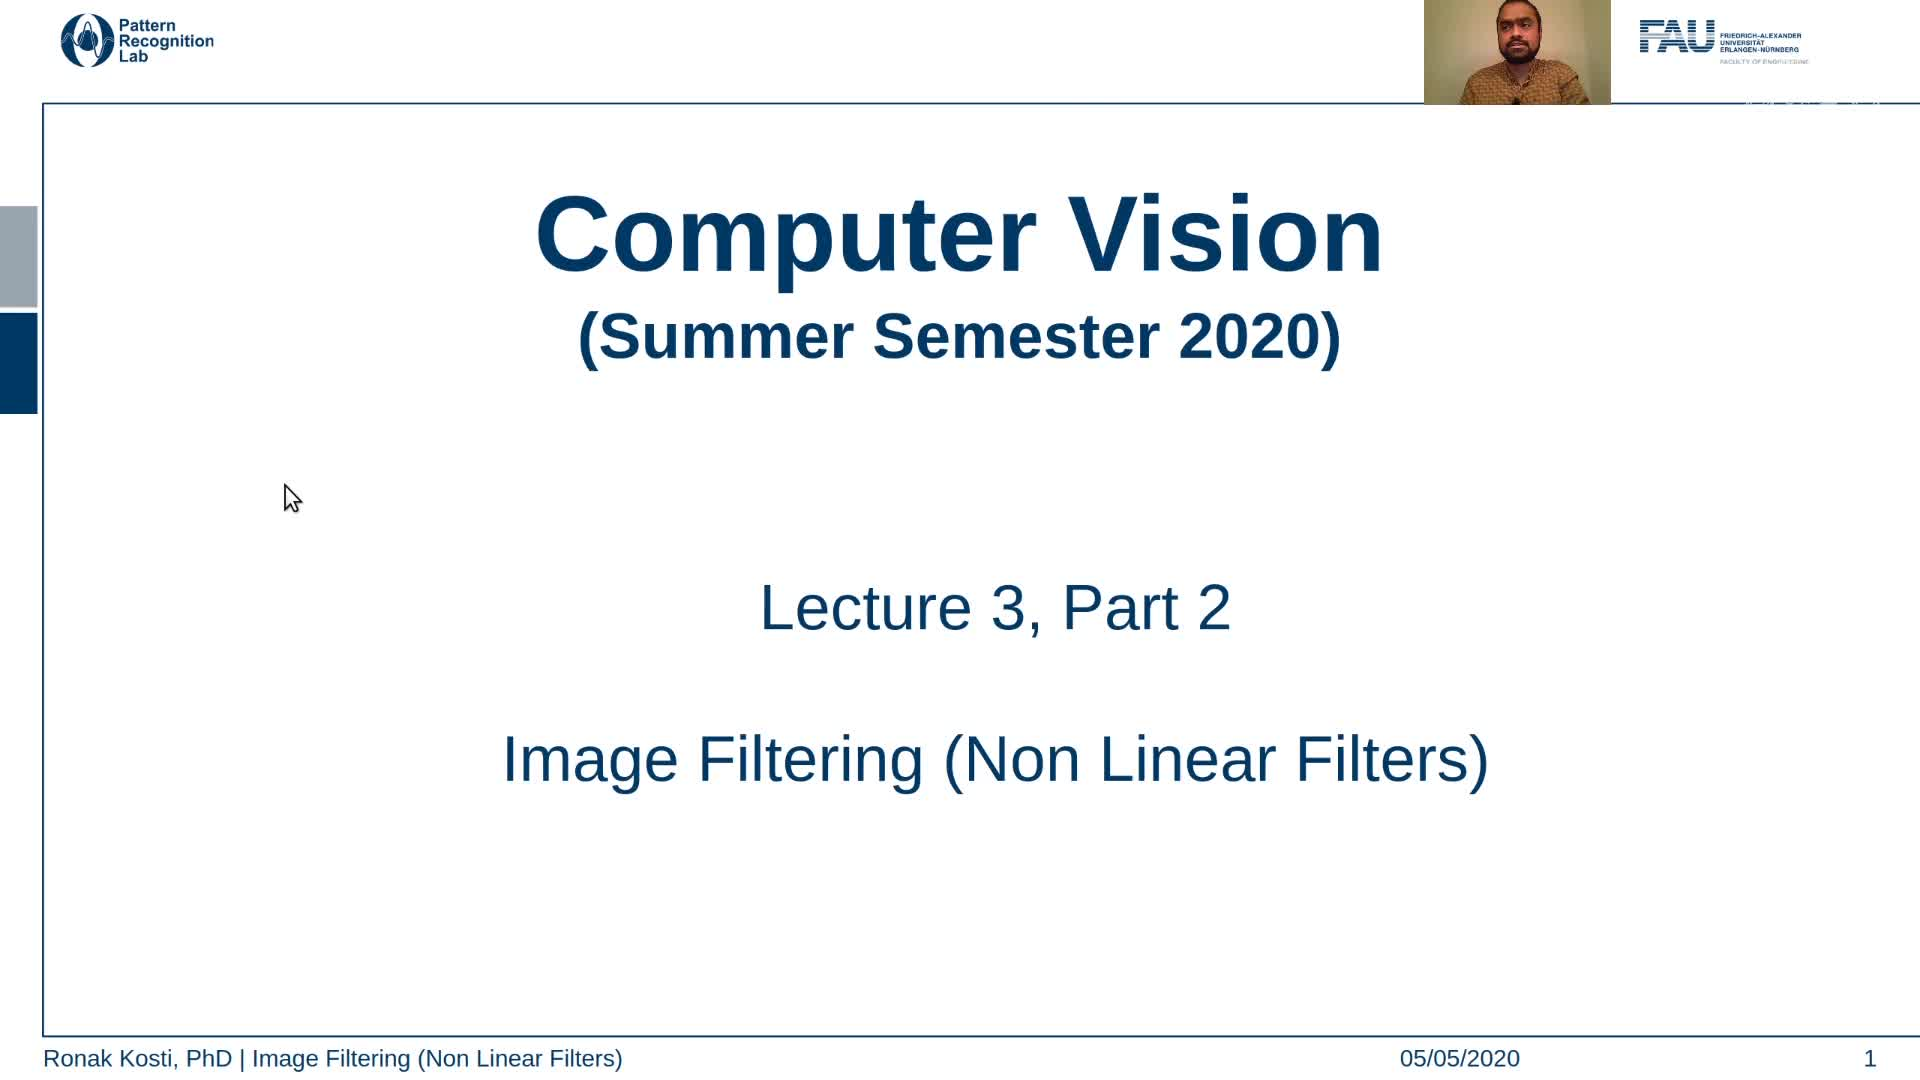 Image Filtering - Non Linear Filters (Lecture 3, Part 2) preview image